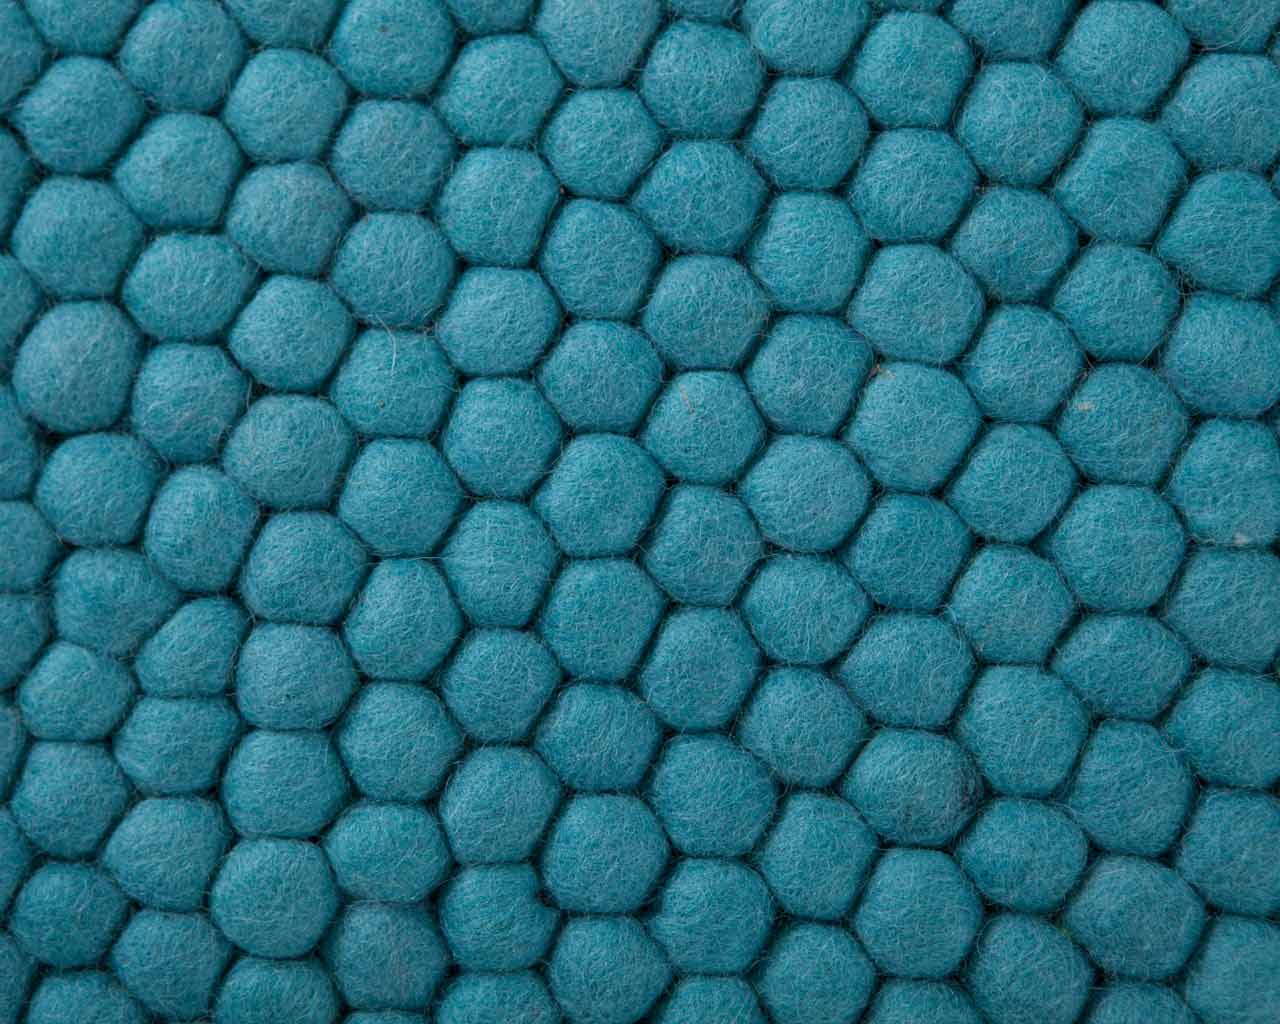 felt carpet design blue